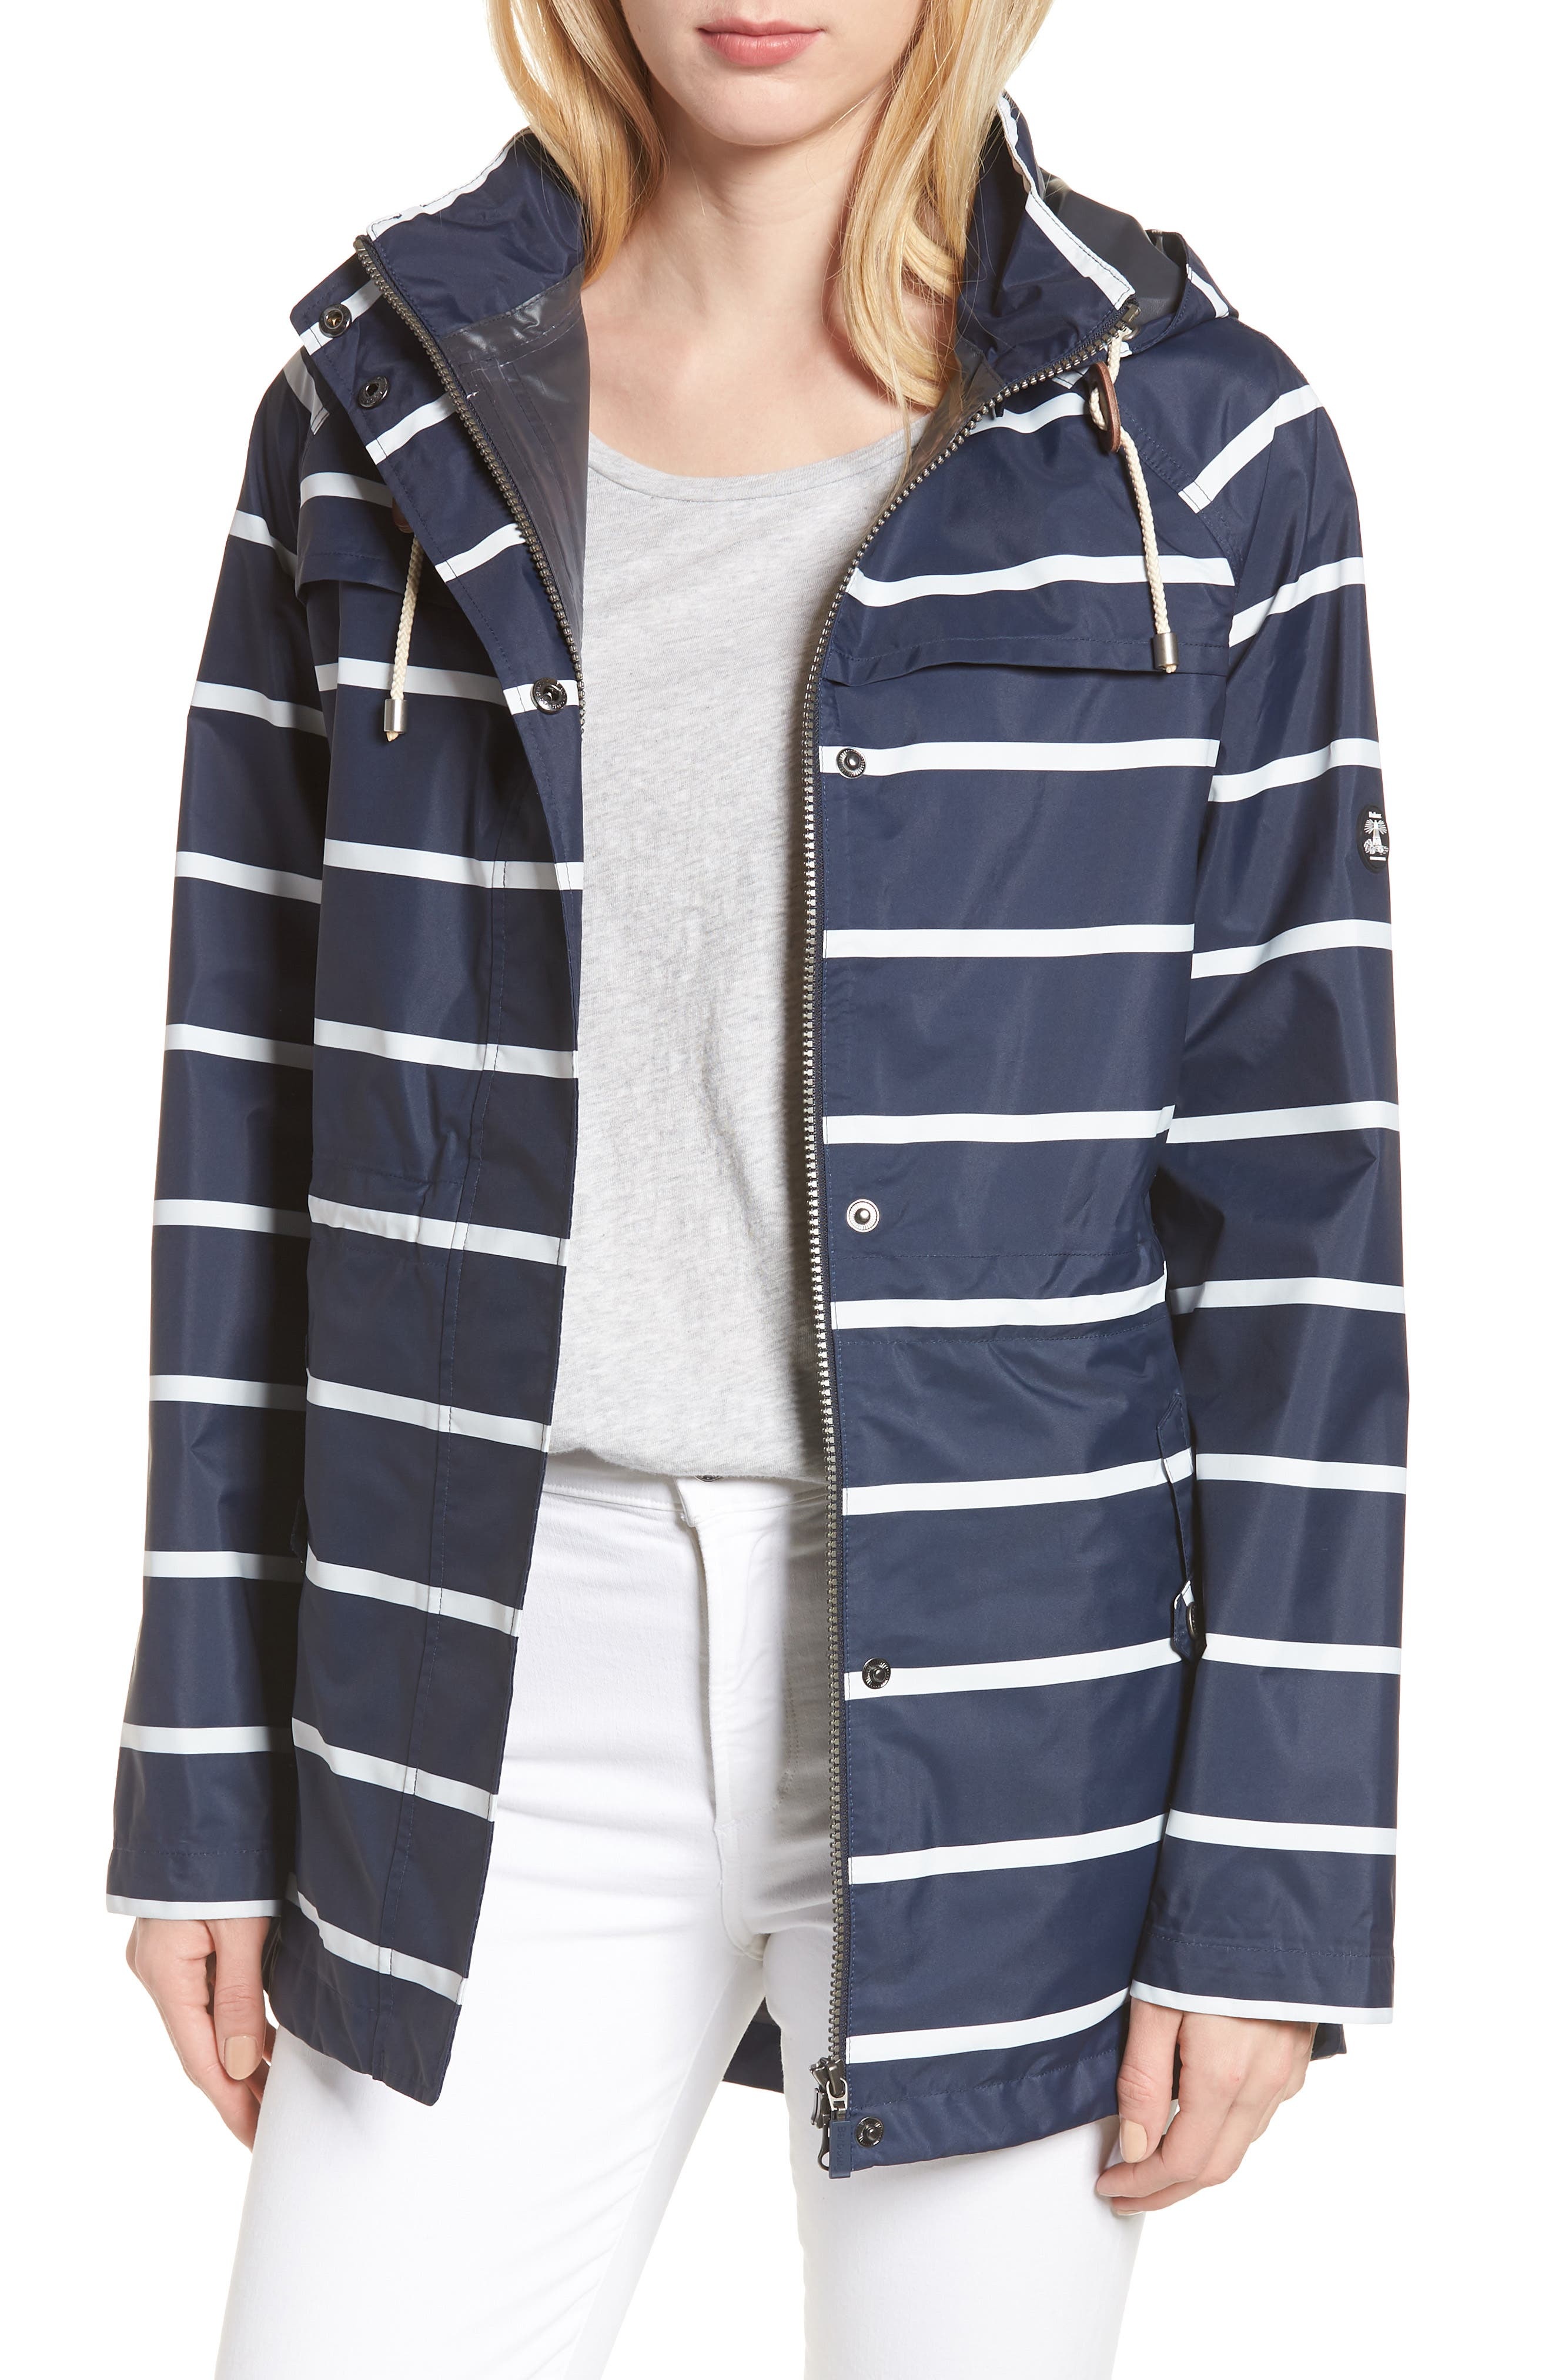 Holliwell Stripe Hooded Jacket,                         Main,                         color, Navy/ White Stripe